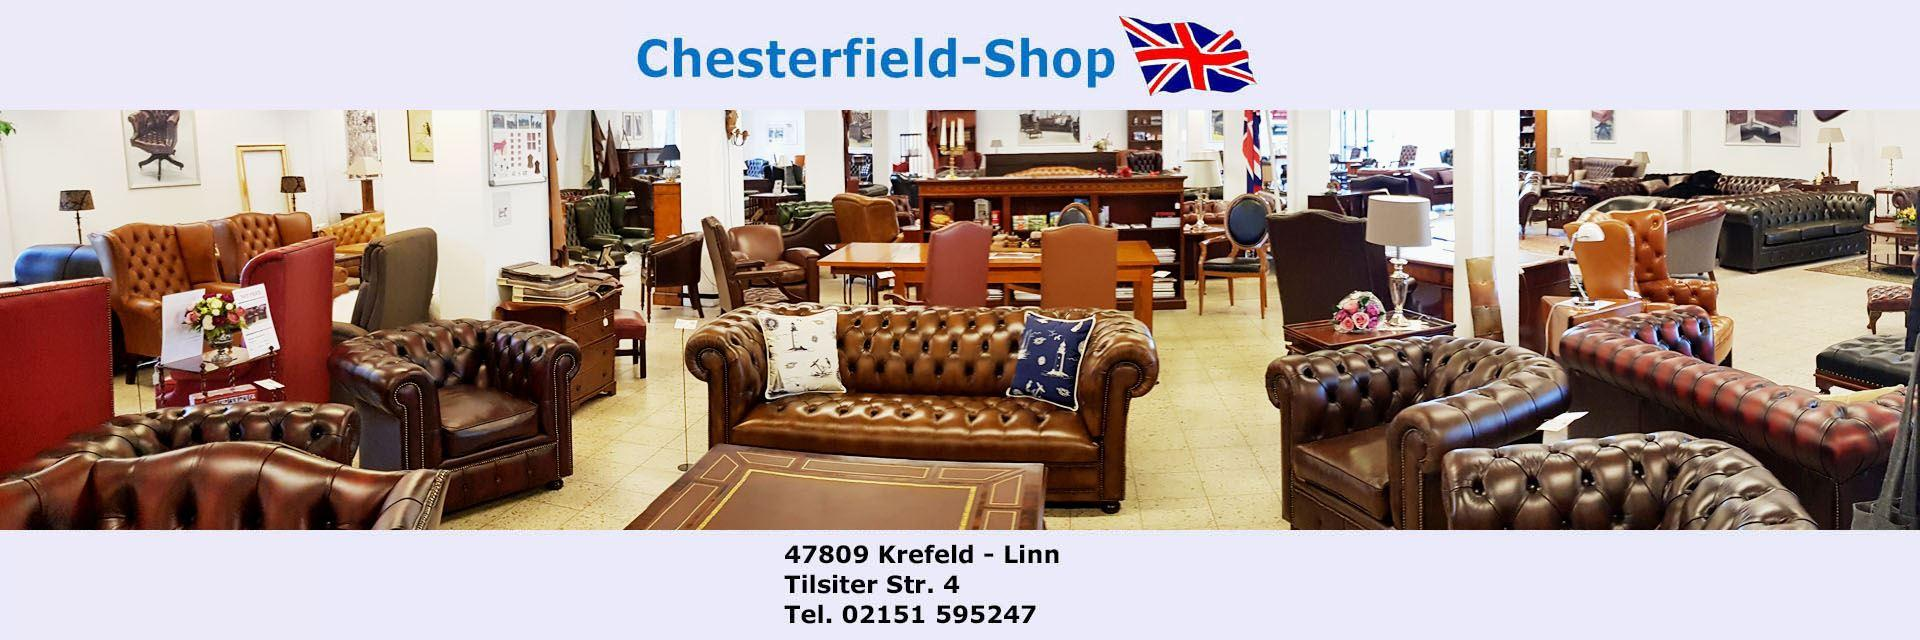 Chesterfield Shopde Chesterfield Sofas Sessel Made In England